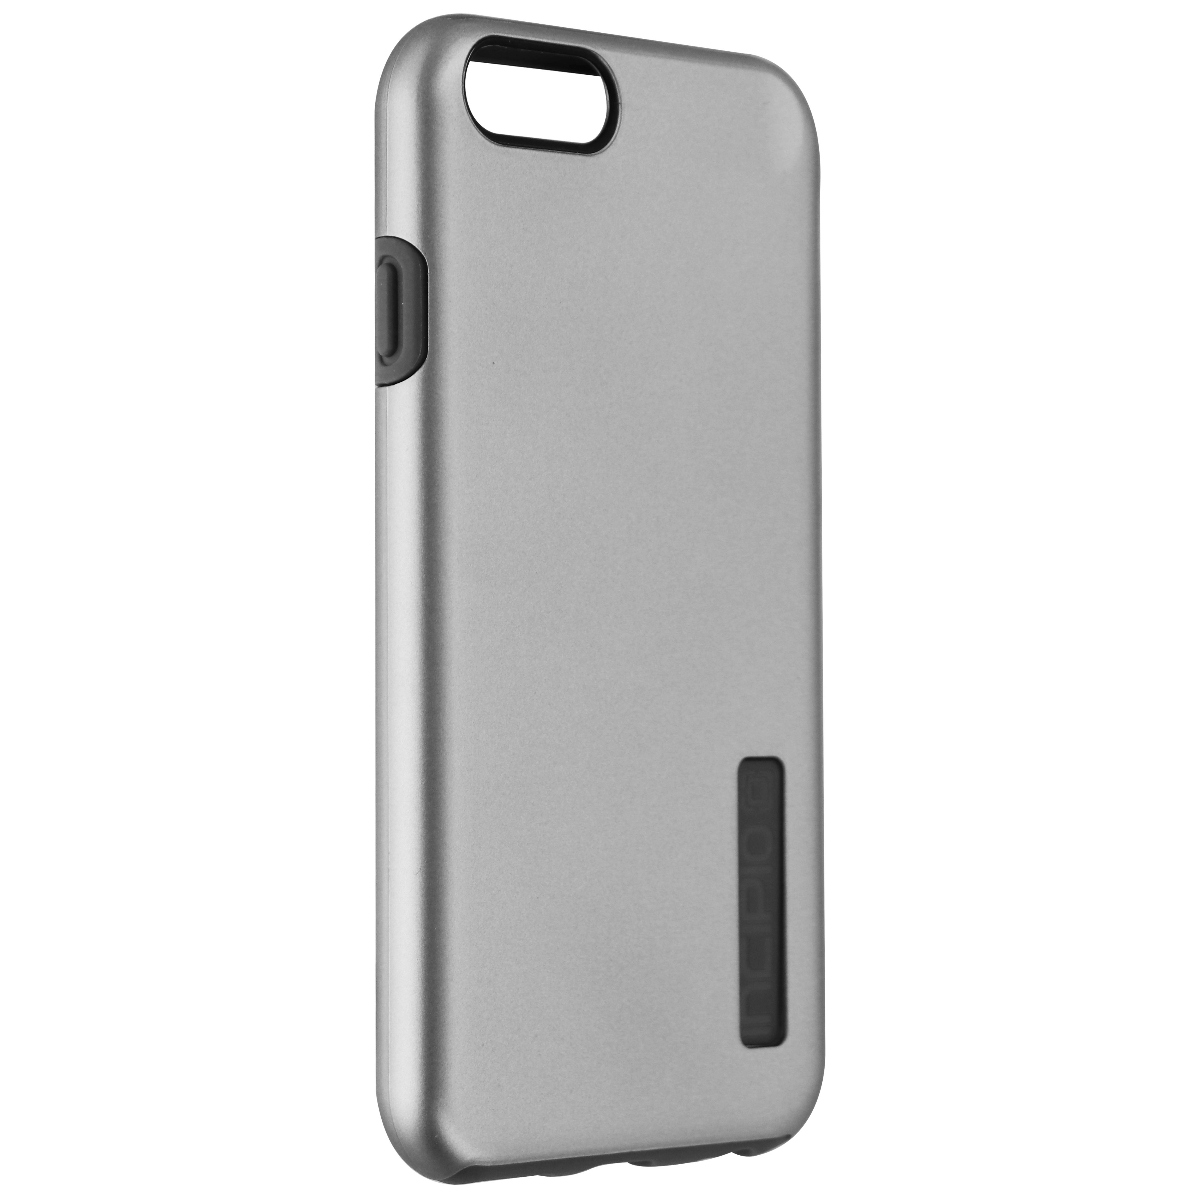 Incipio DualPro Series Protective Case iPhone 6s and 6 Only - Silver / Dark Gray